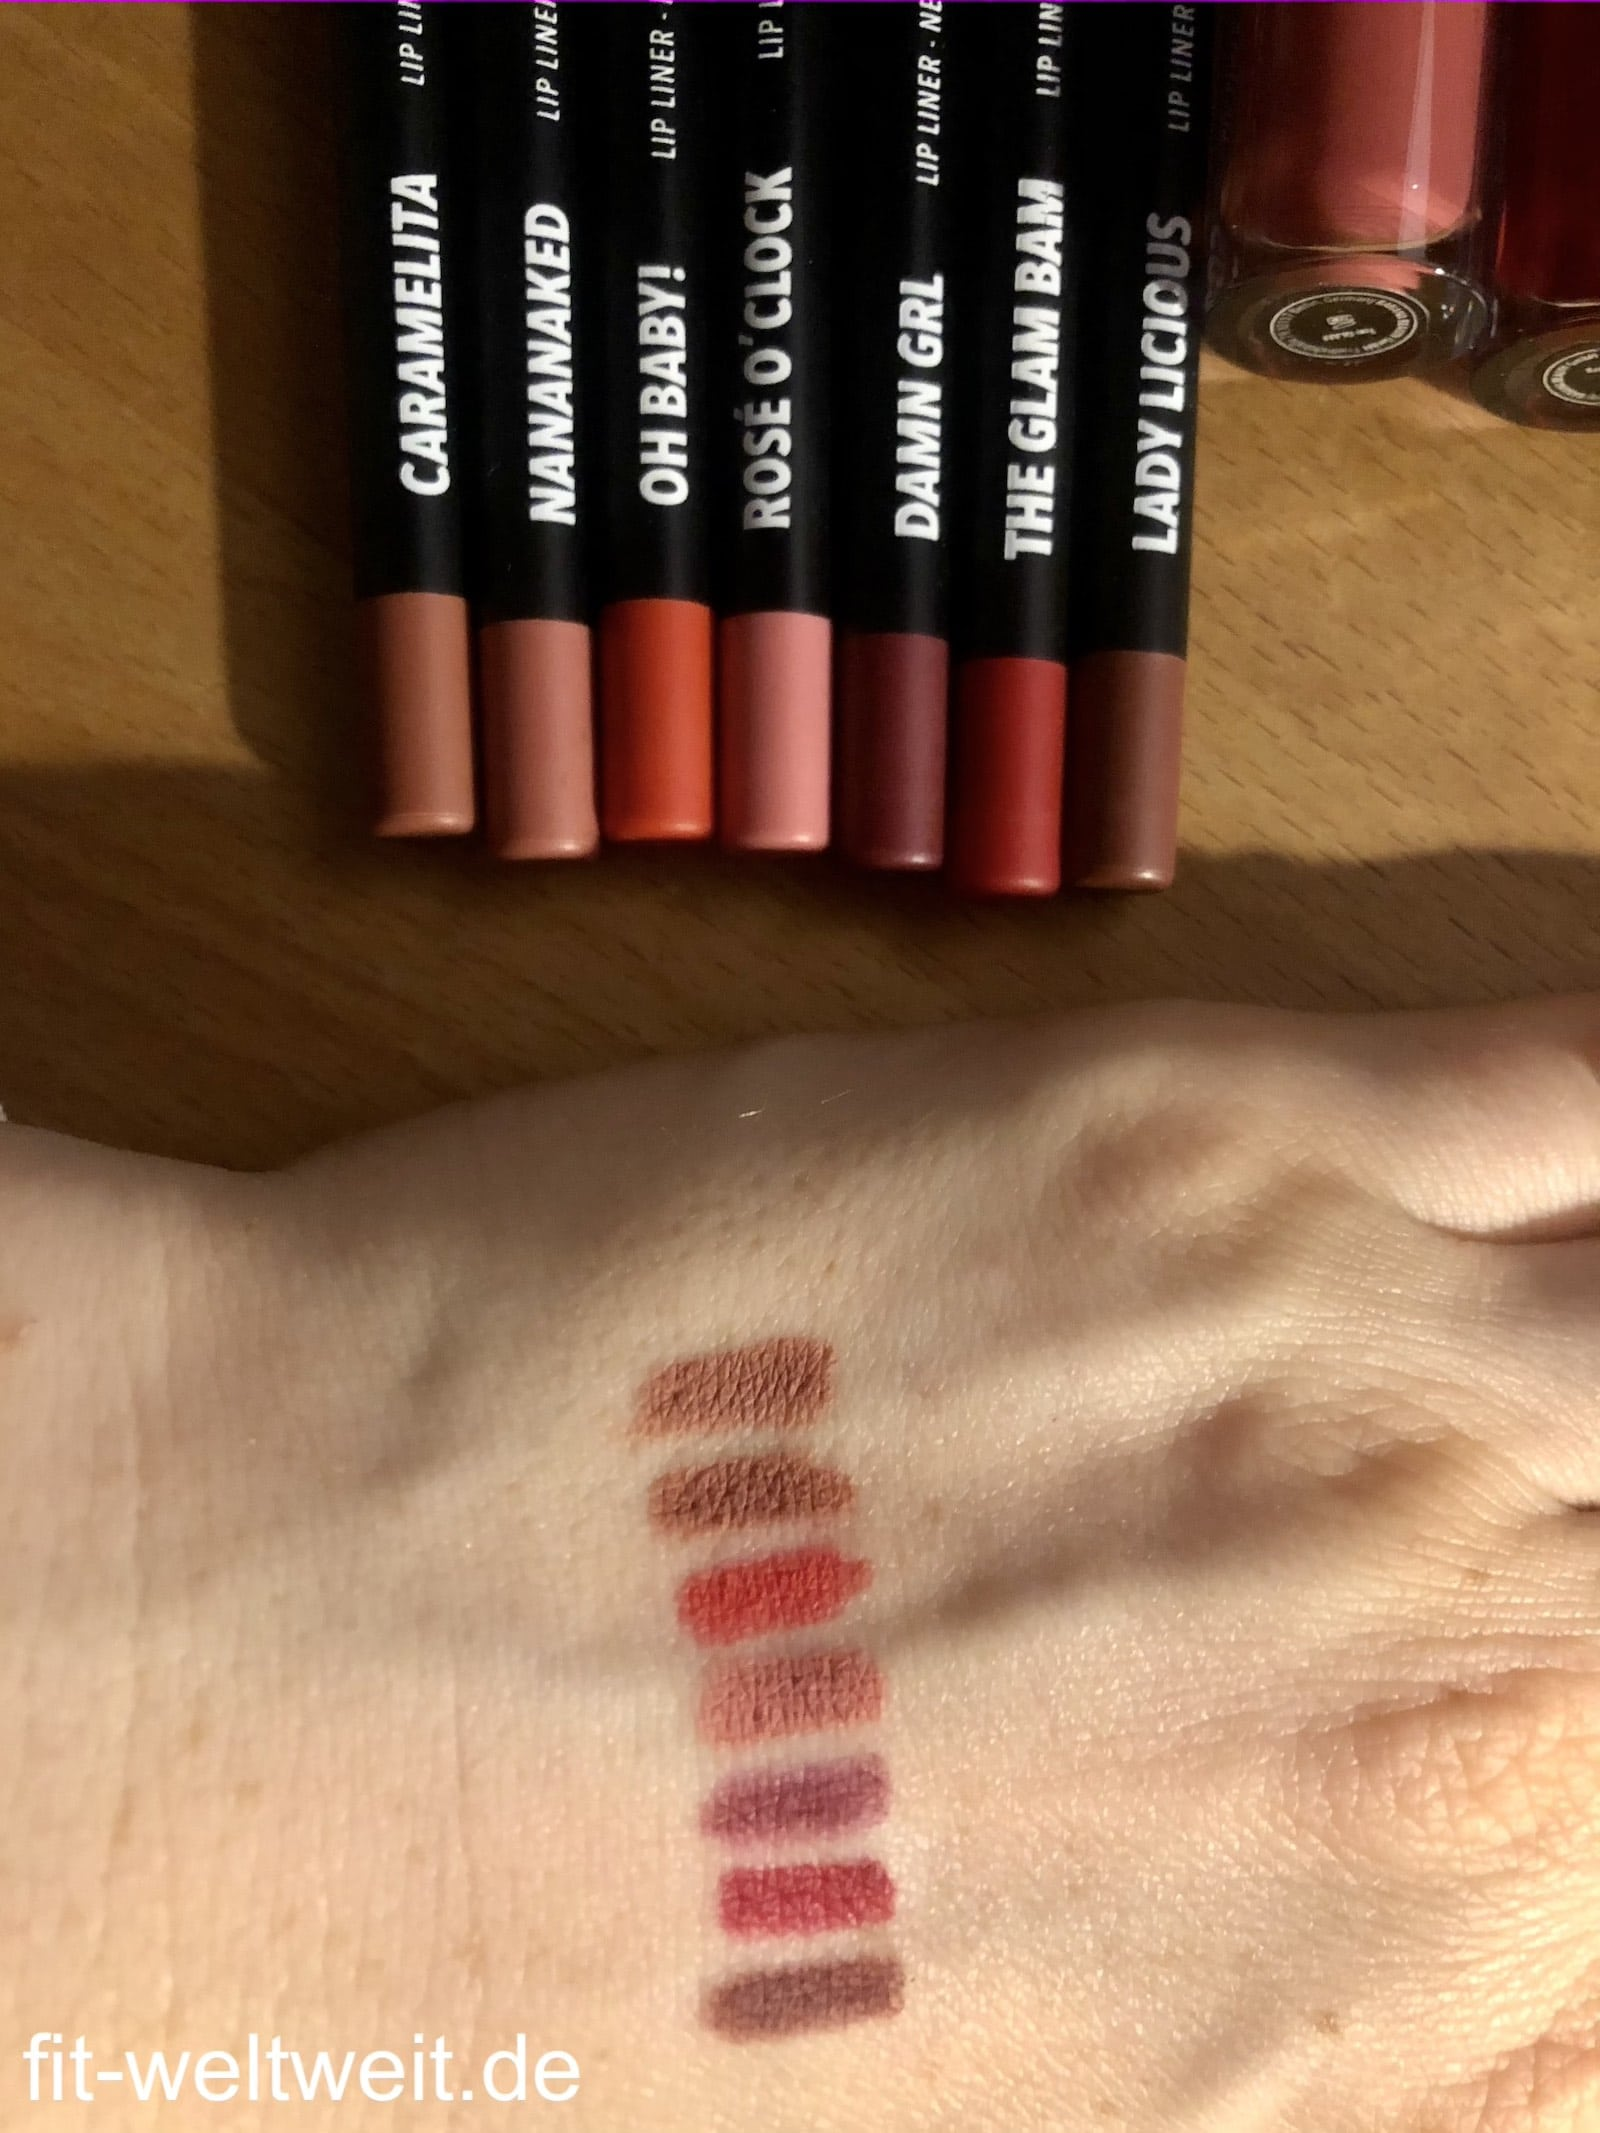 Banana Beauty Swatches Lip Liner Lippenkontourenstifte